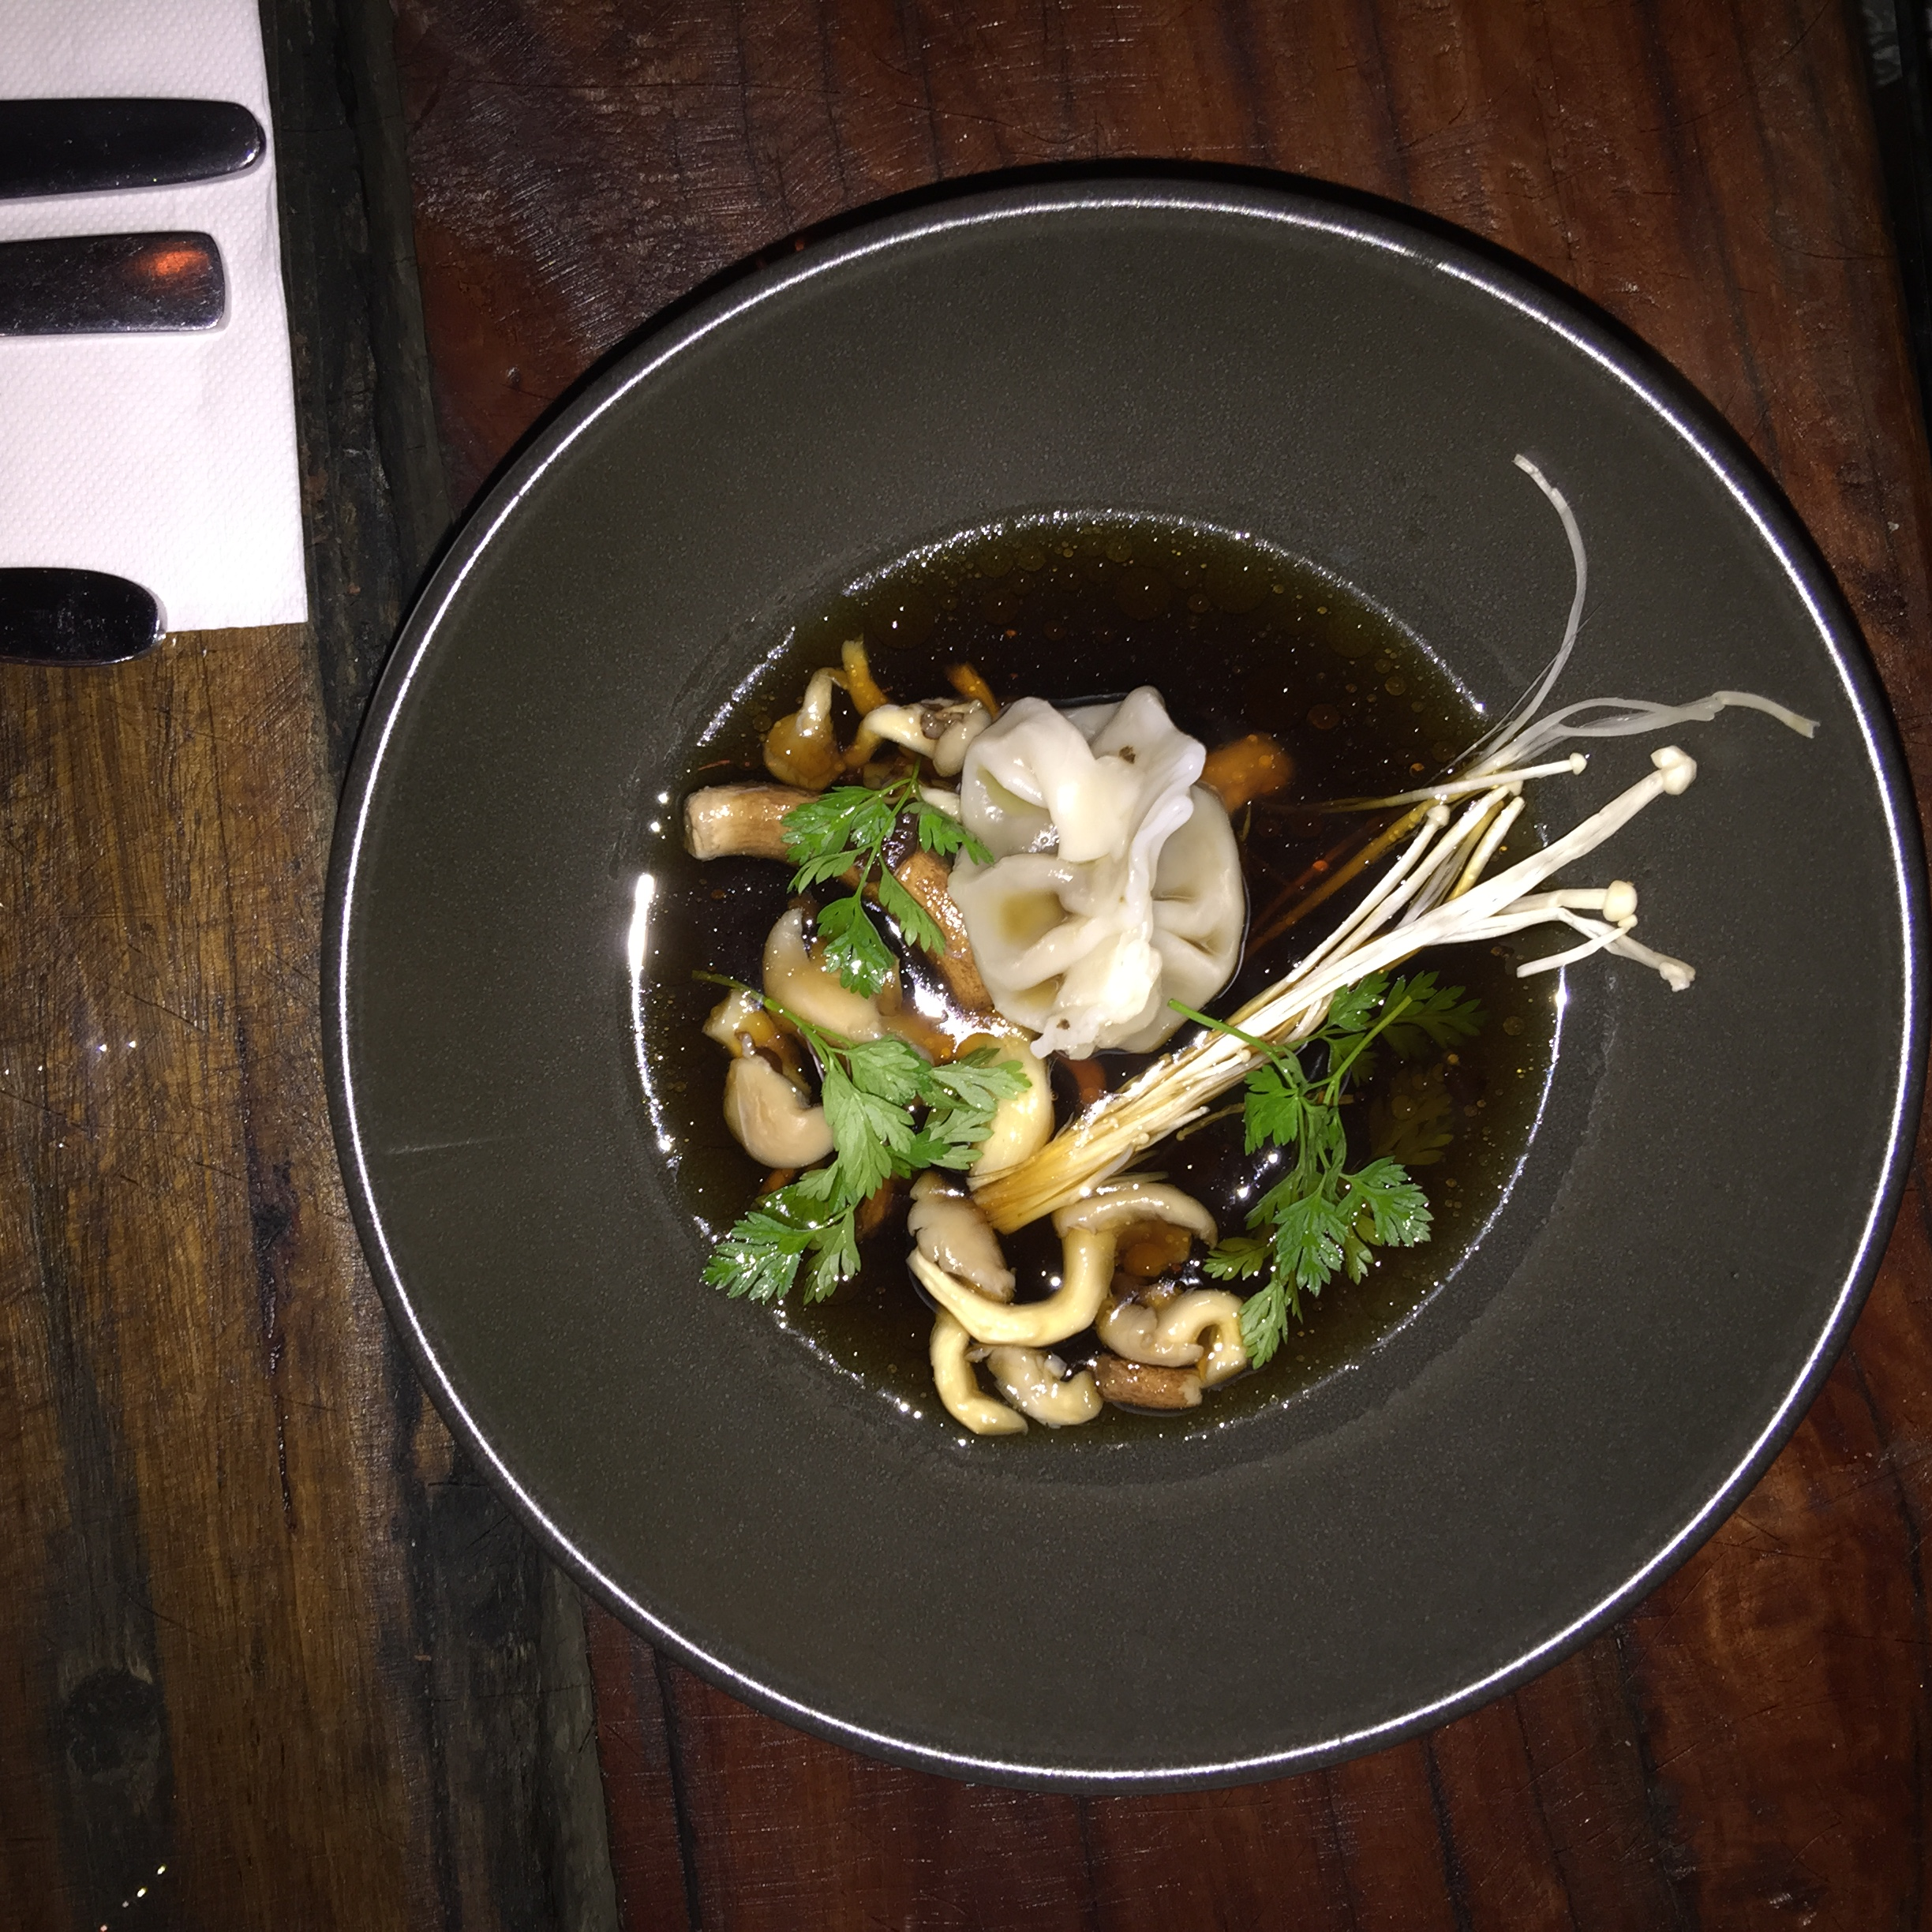 Mushroom Consommé with Abalone and Scallop Dumplings